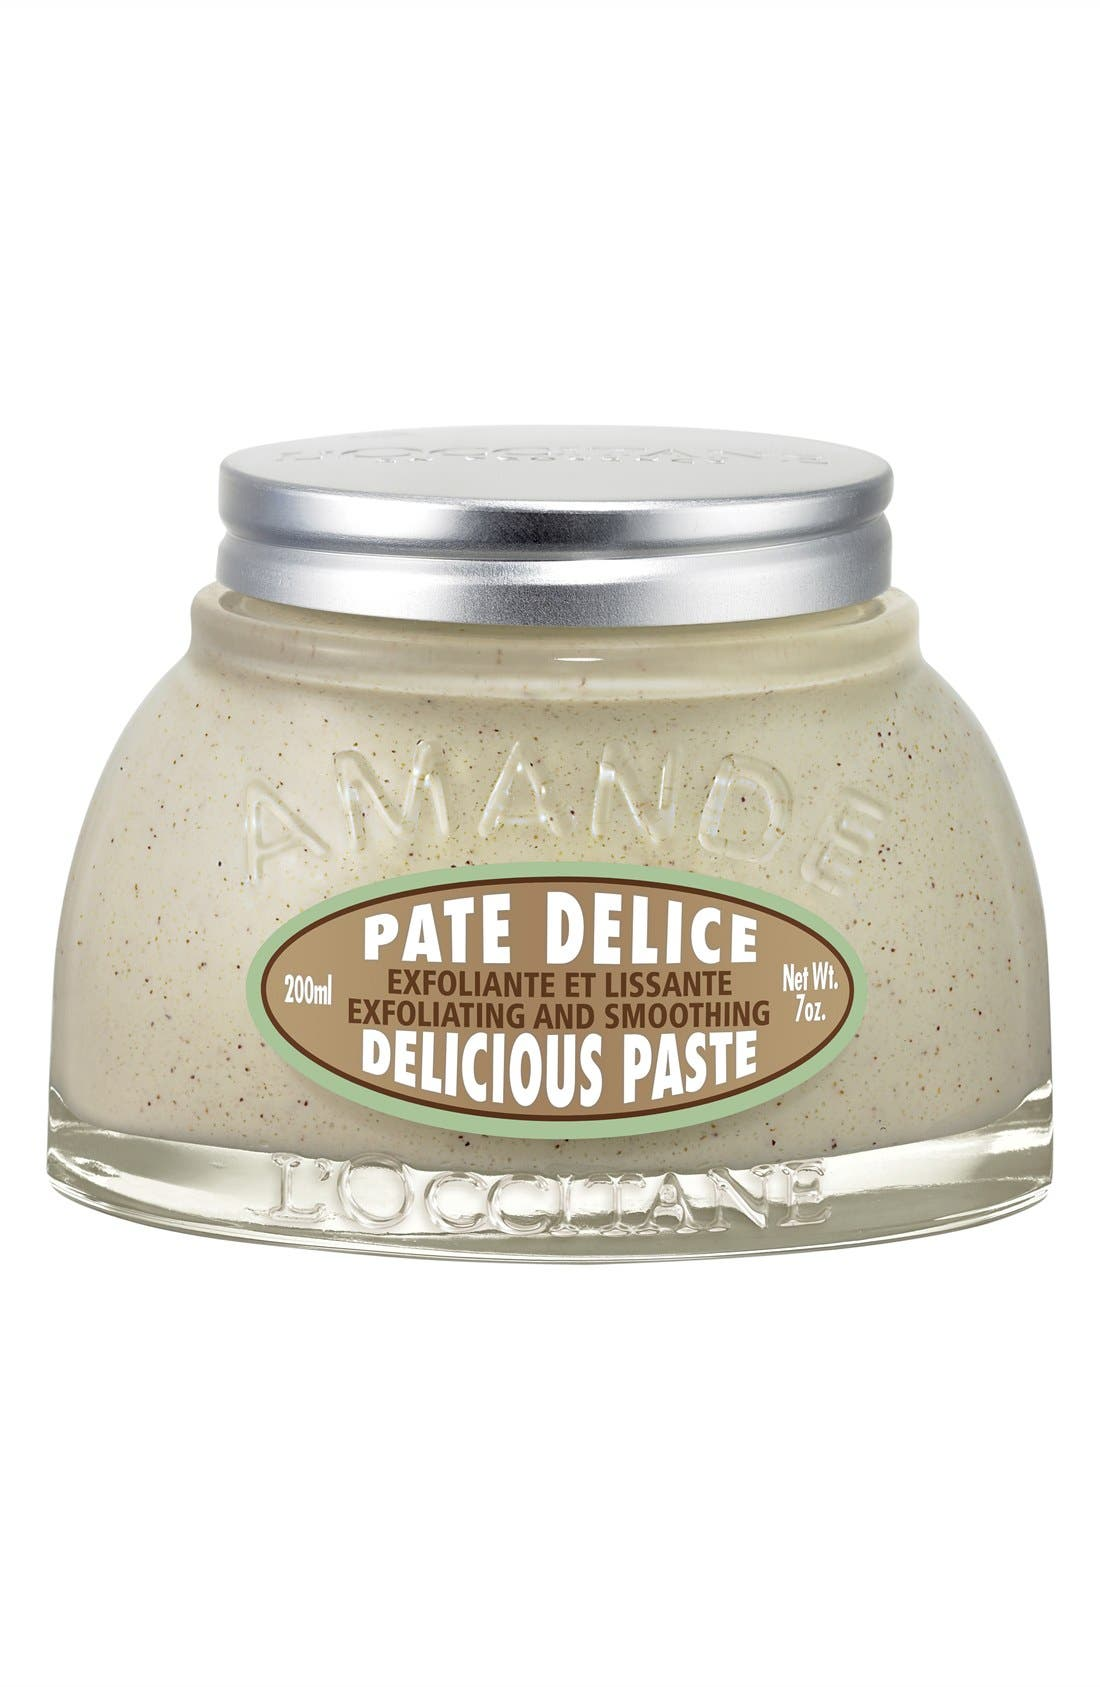 L'Occitane 'Almond Delicious Paste' Exfoliating Butter